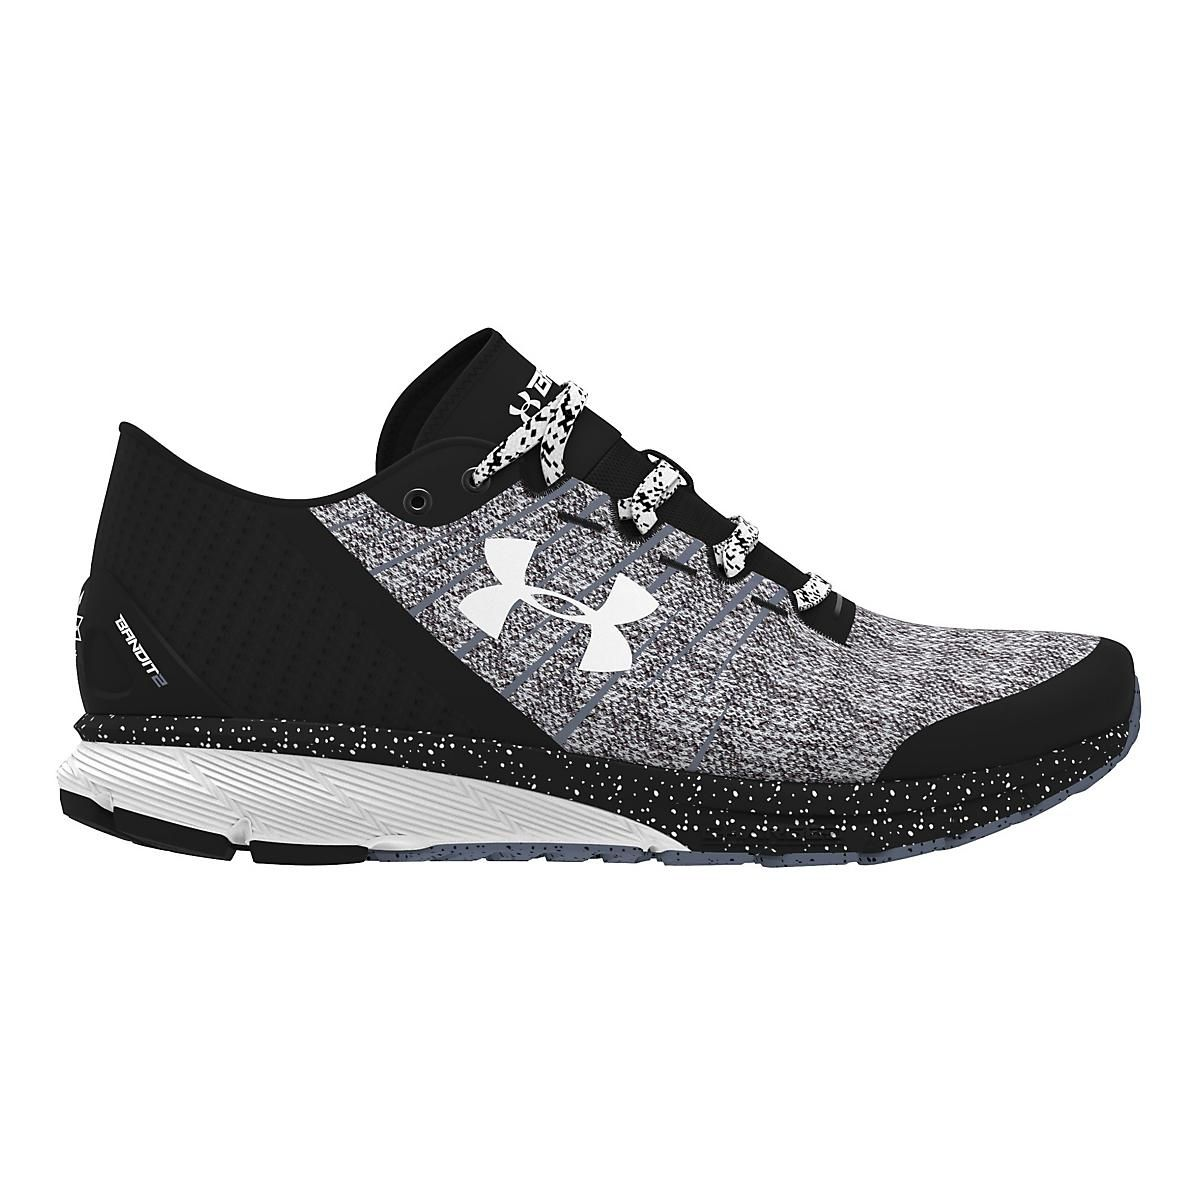 Damen-Laufschuhe UA Charged Bandit 2 | Armours, Sportswear and Running shoes